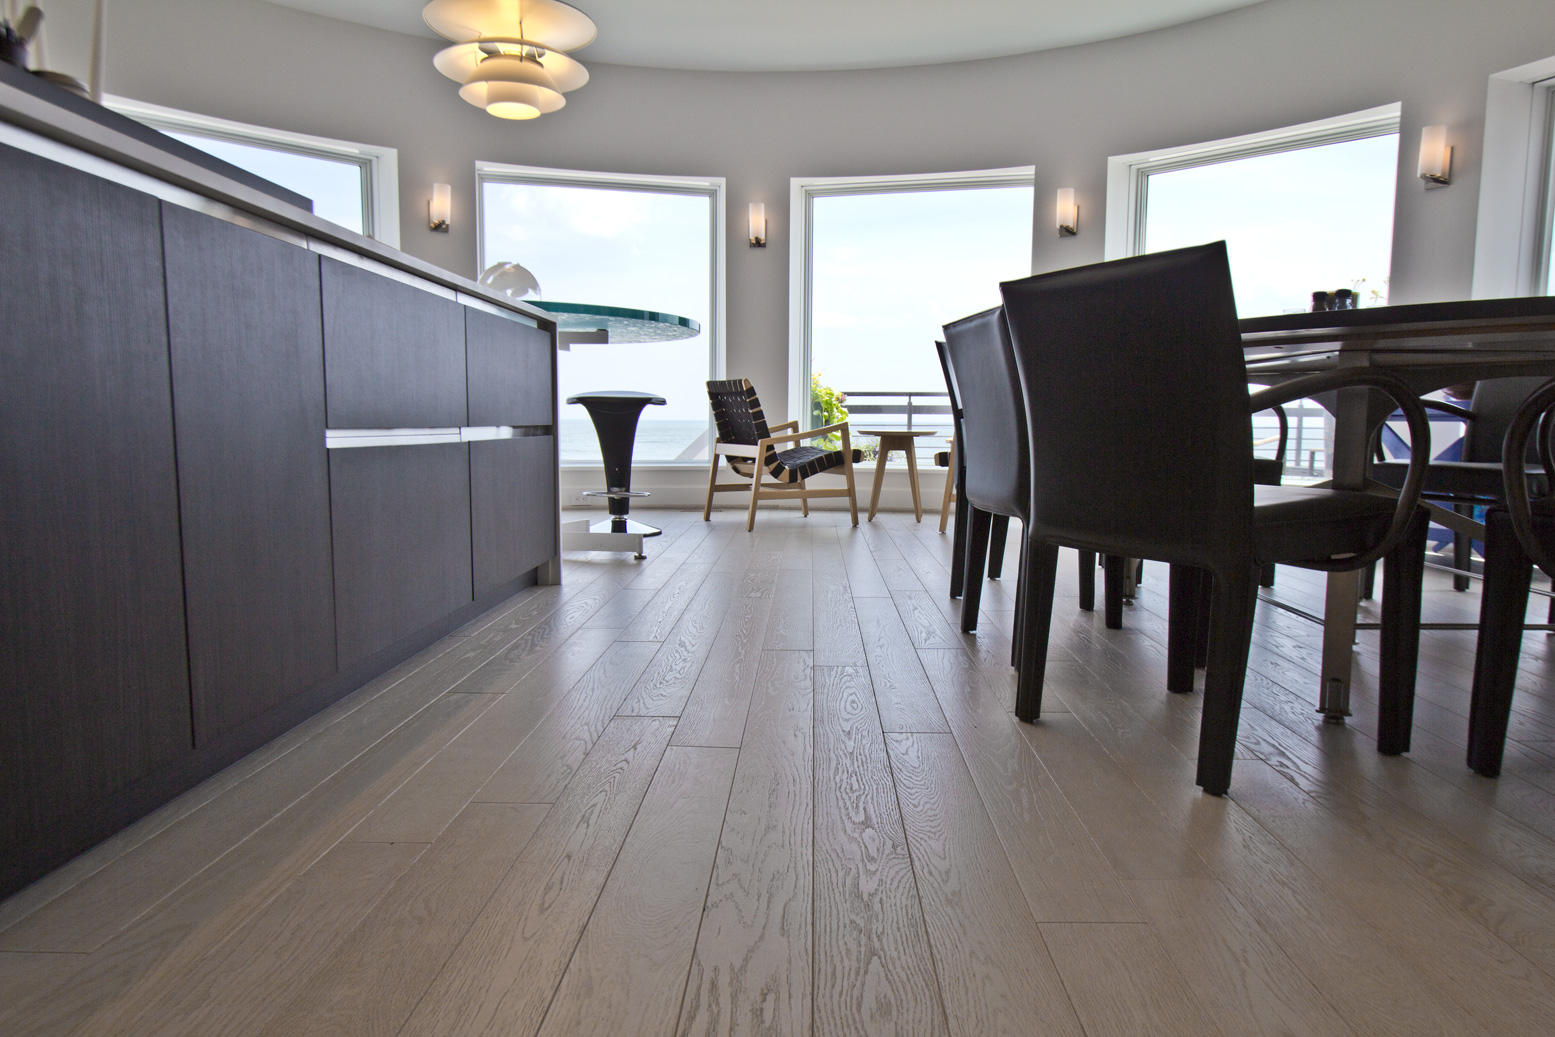 North American White Oak flooring